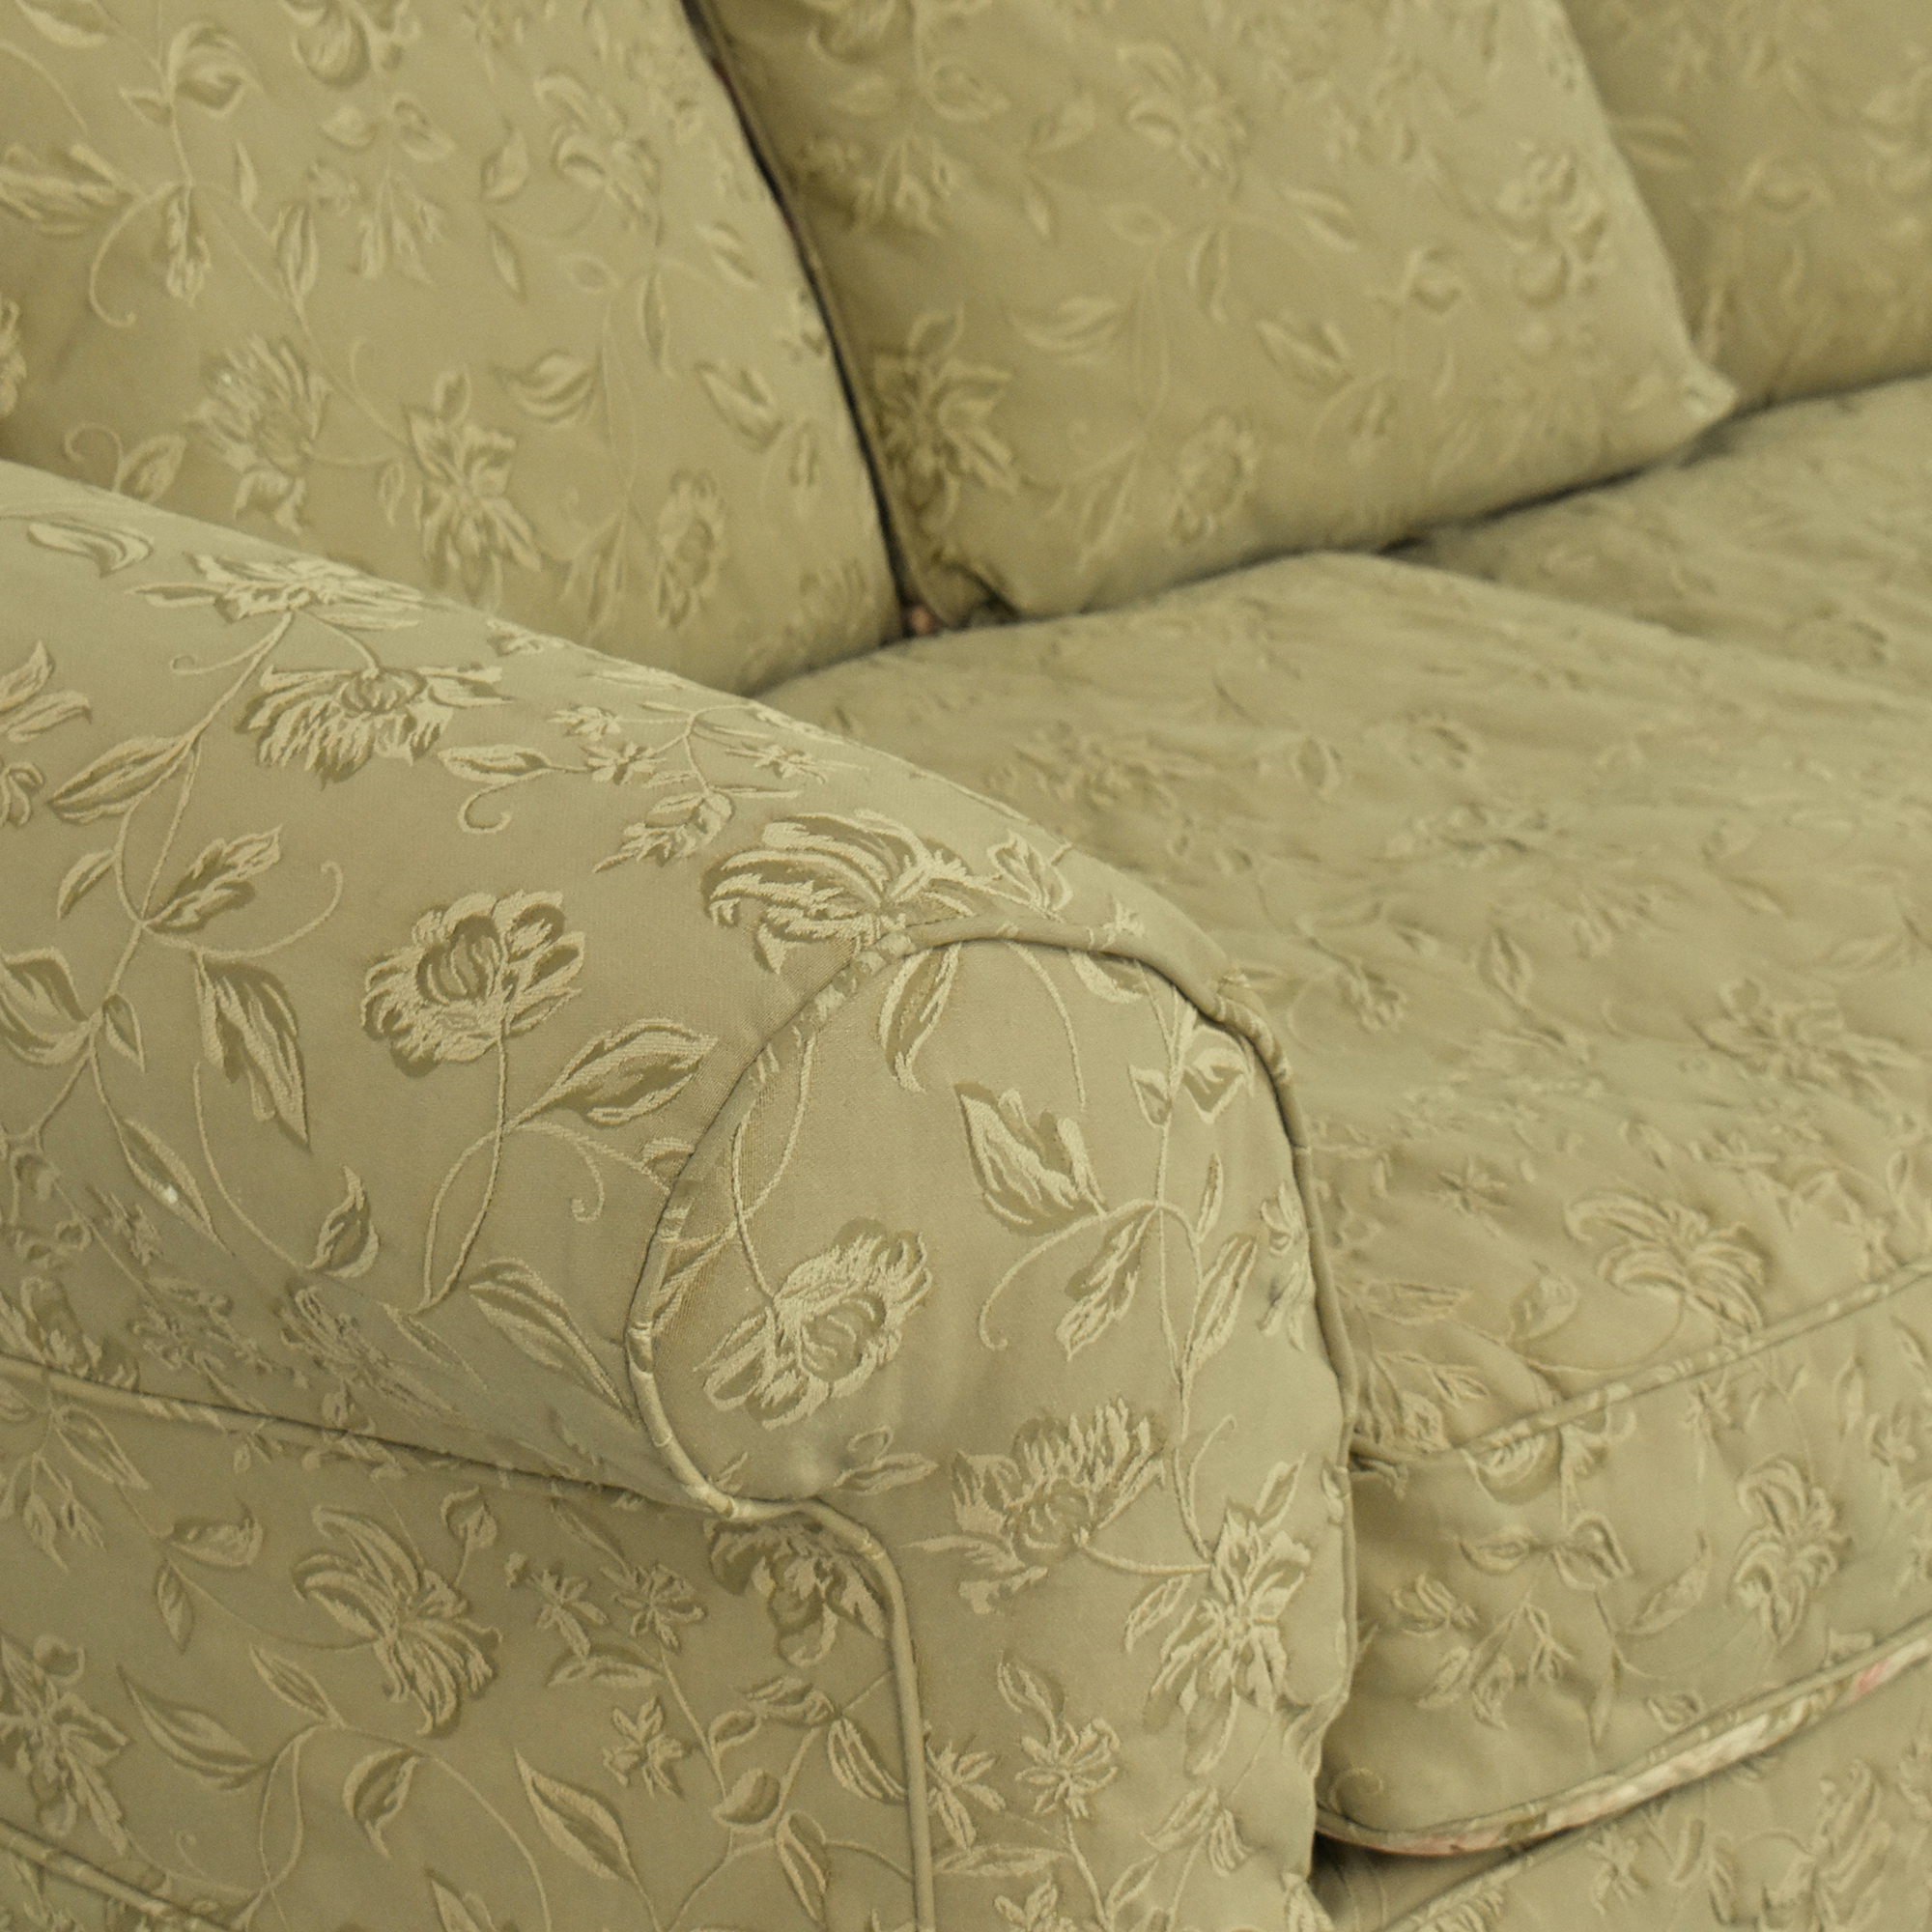 Domain Domain Floral Slipcovered Sofa second hand